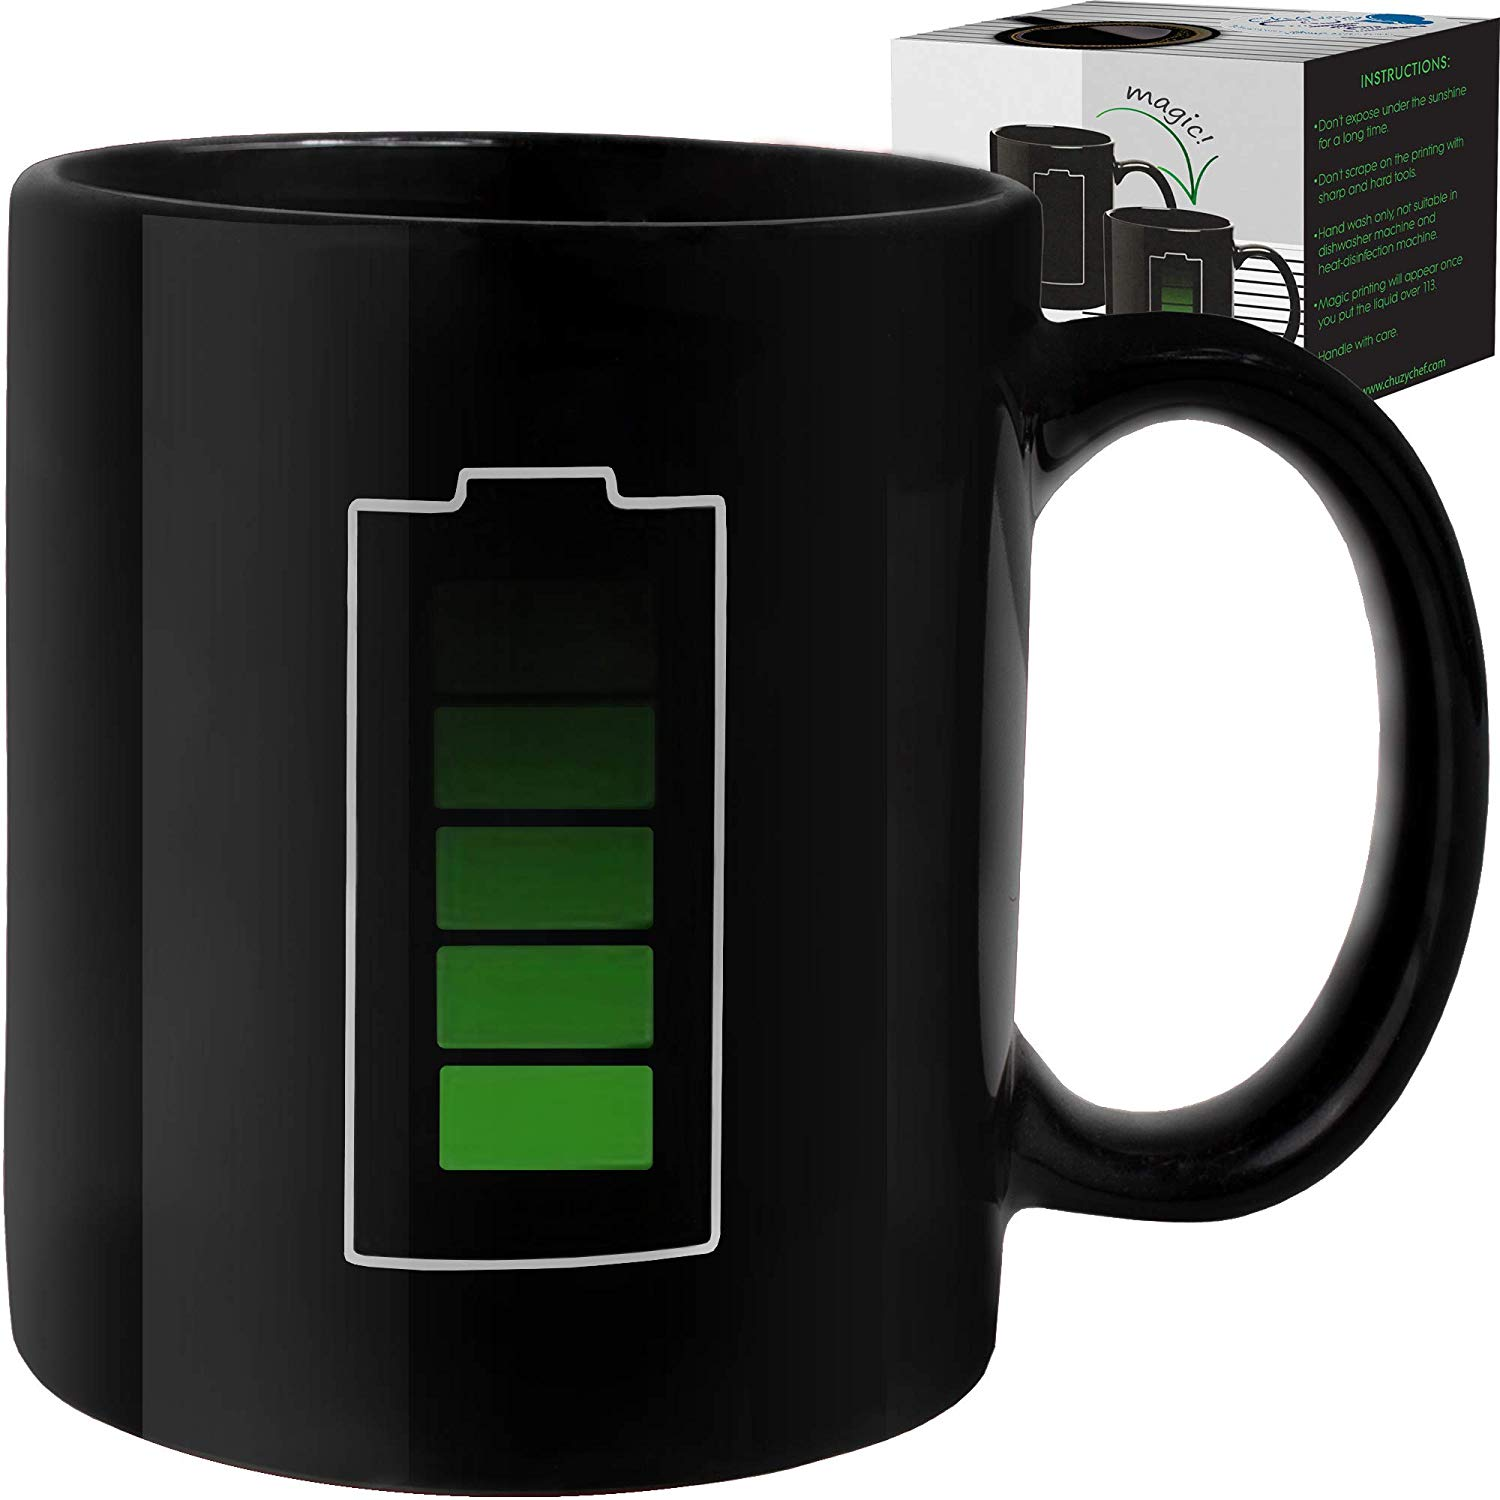 Technology themed mug: Charge reveals GREEN when hot liquid is poured in